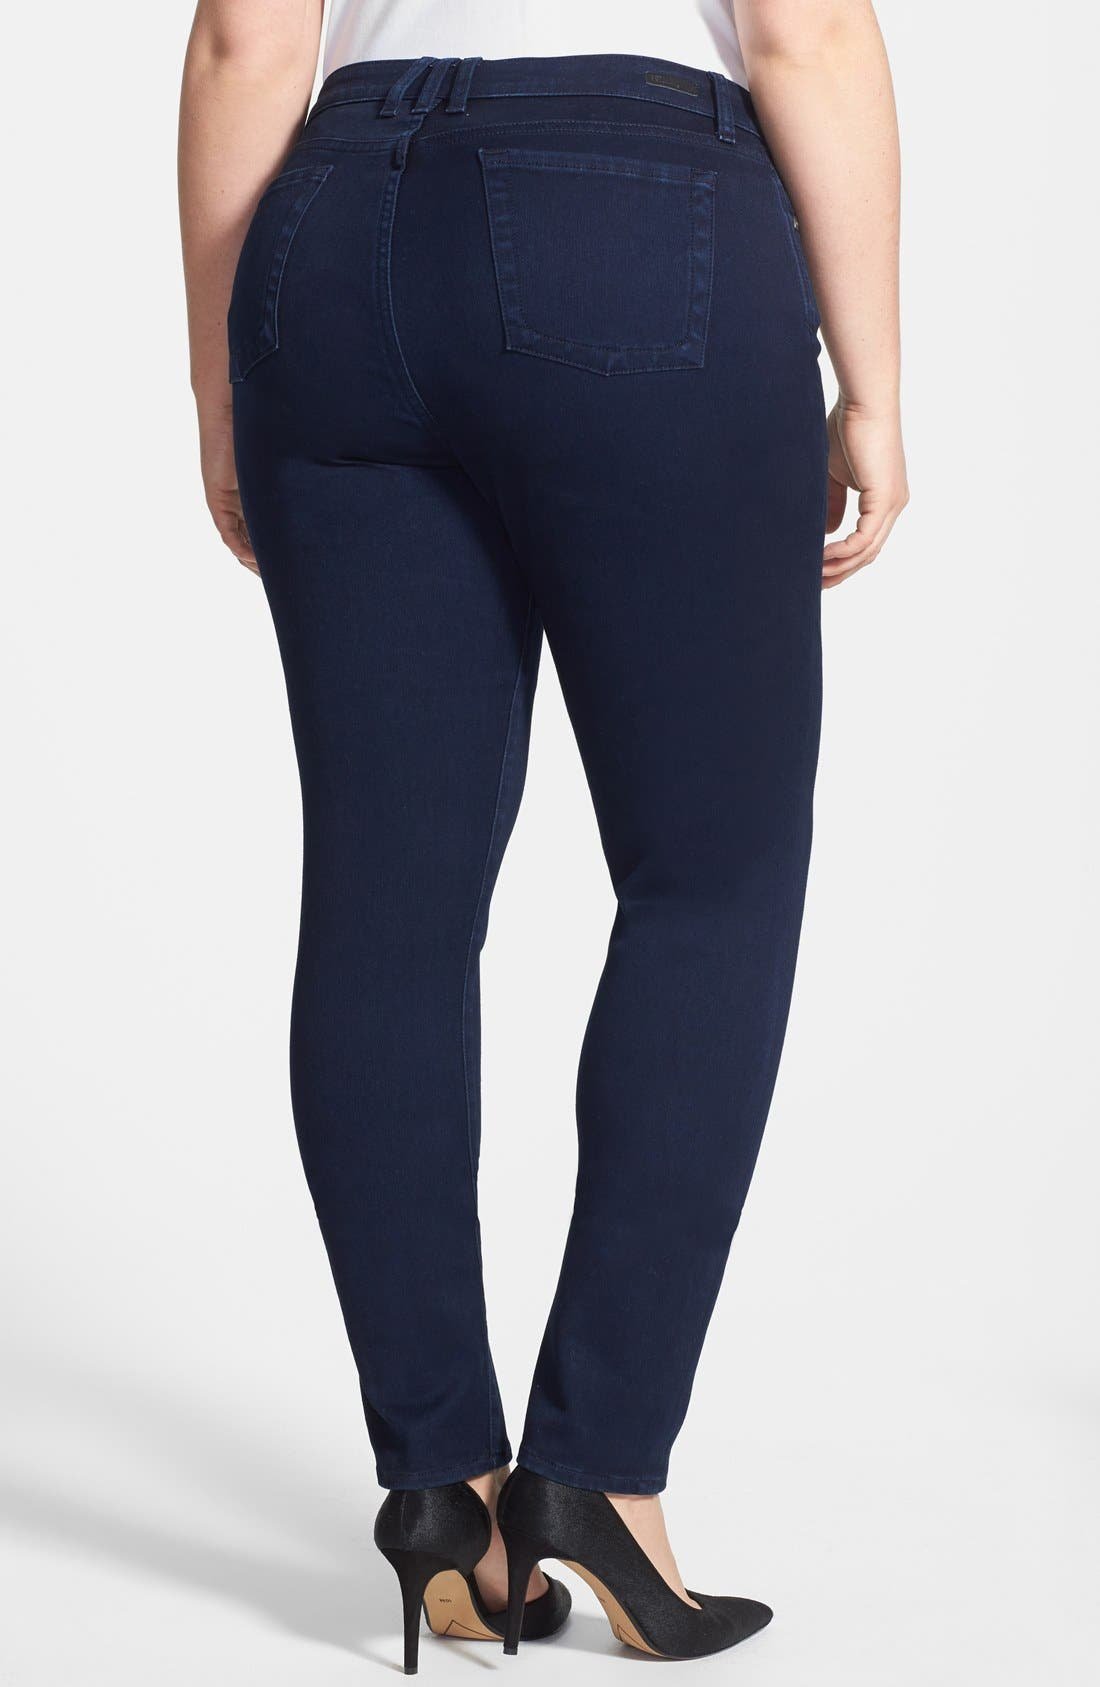 Alternate Image 2  - KUT from the Kloth 'Diana' Stretch Skinny Jeans (Discrete) (Plus Size)